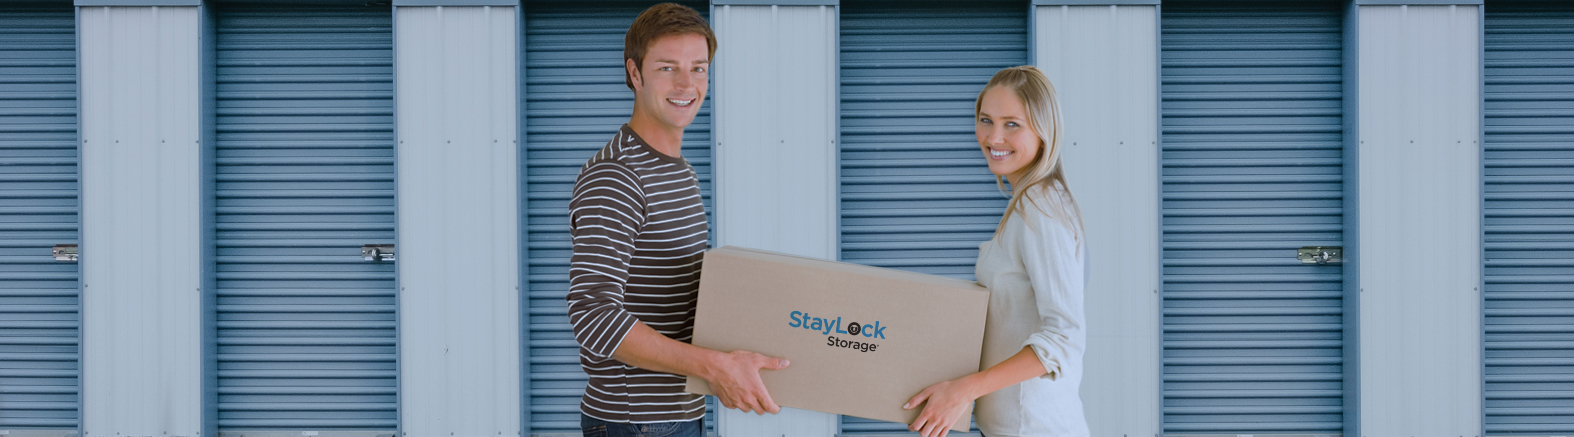 Staylock Storage Solutions